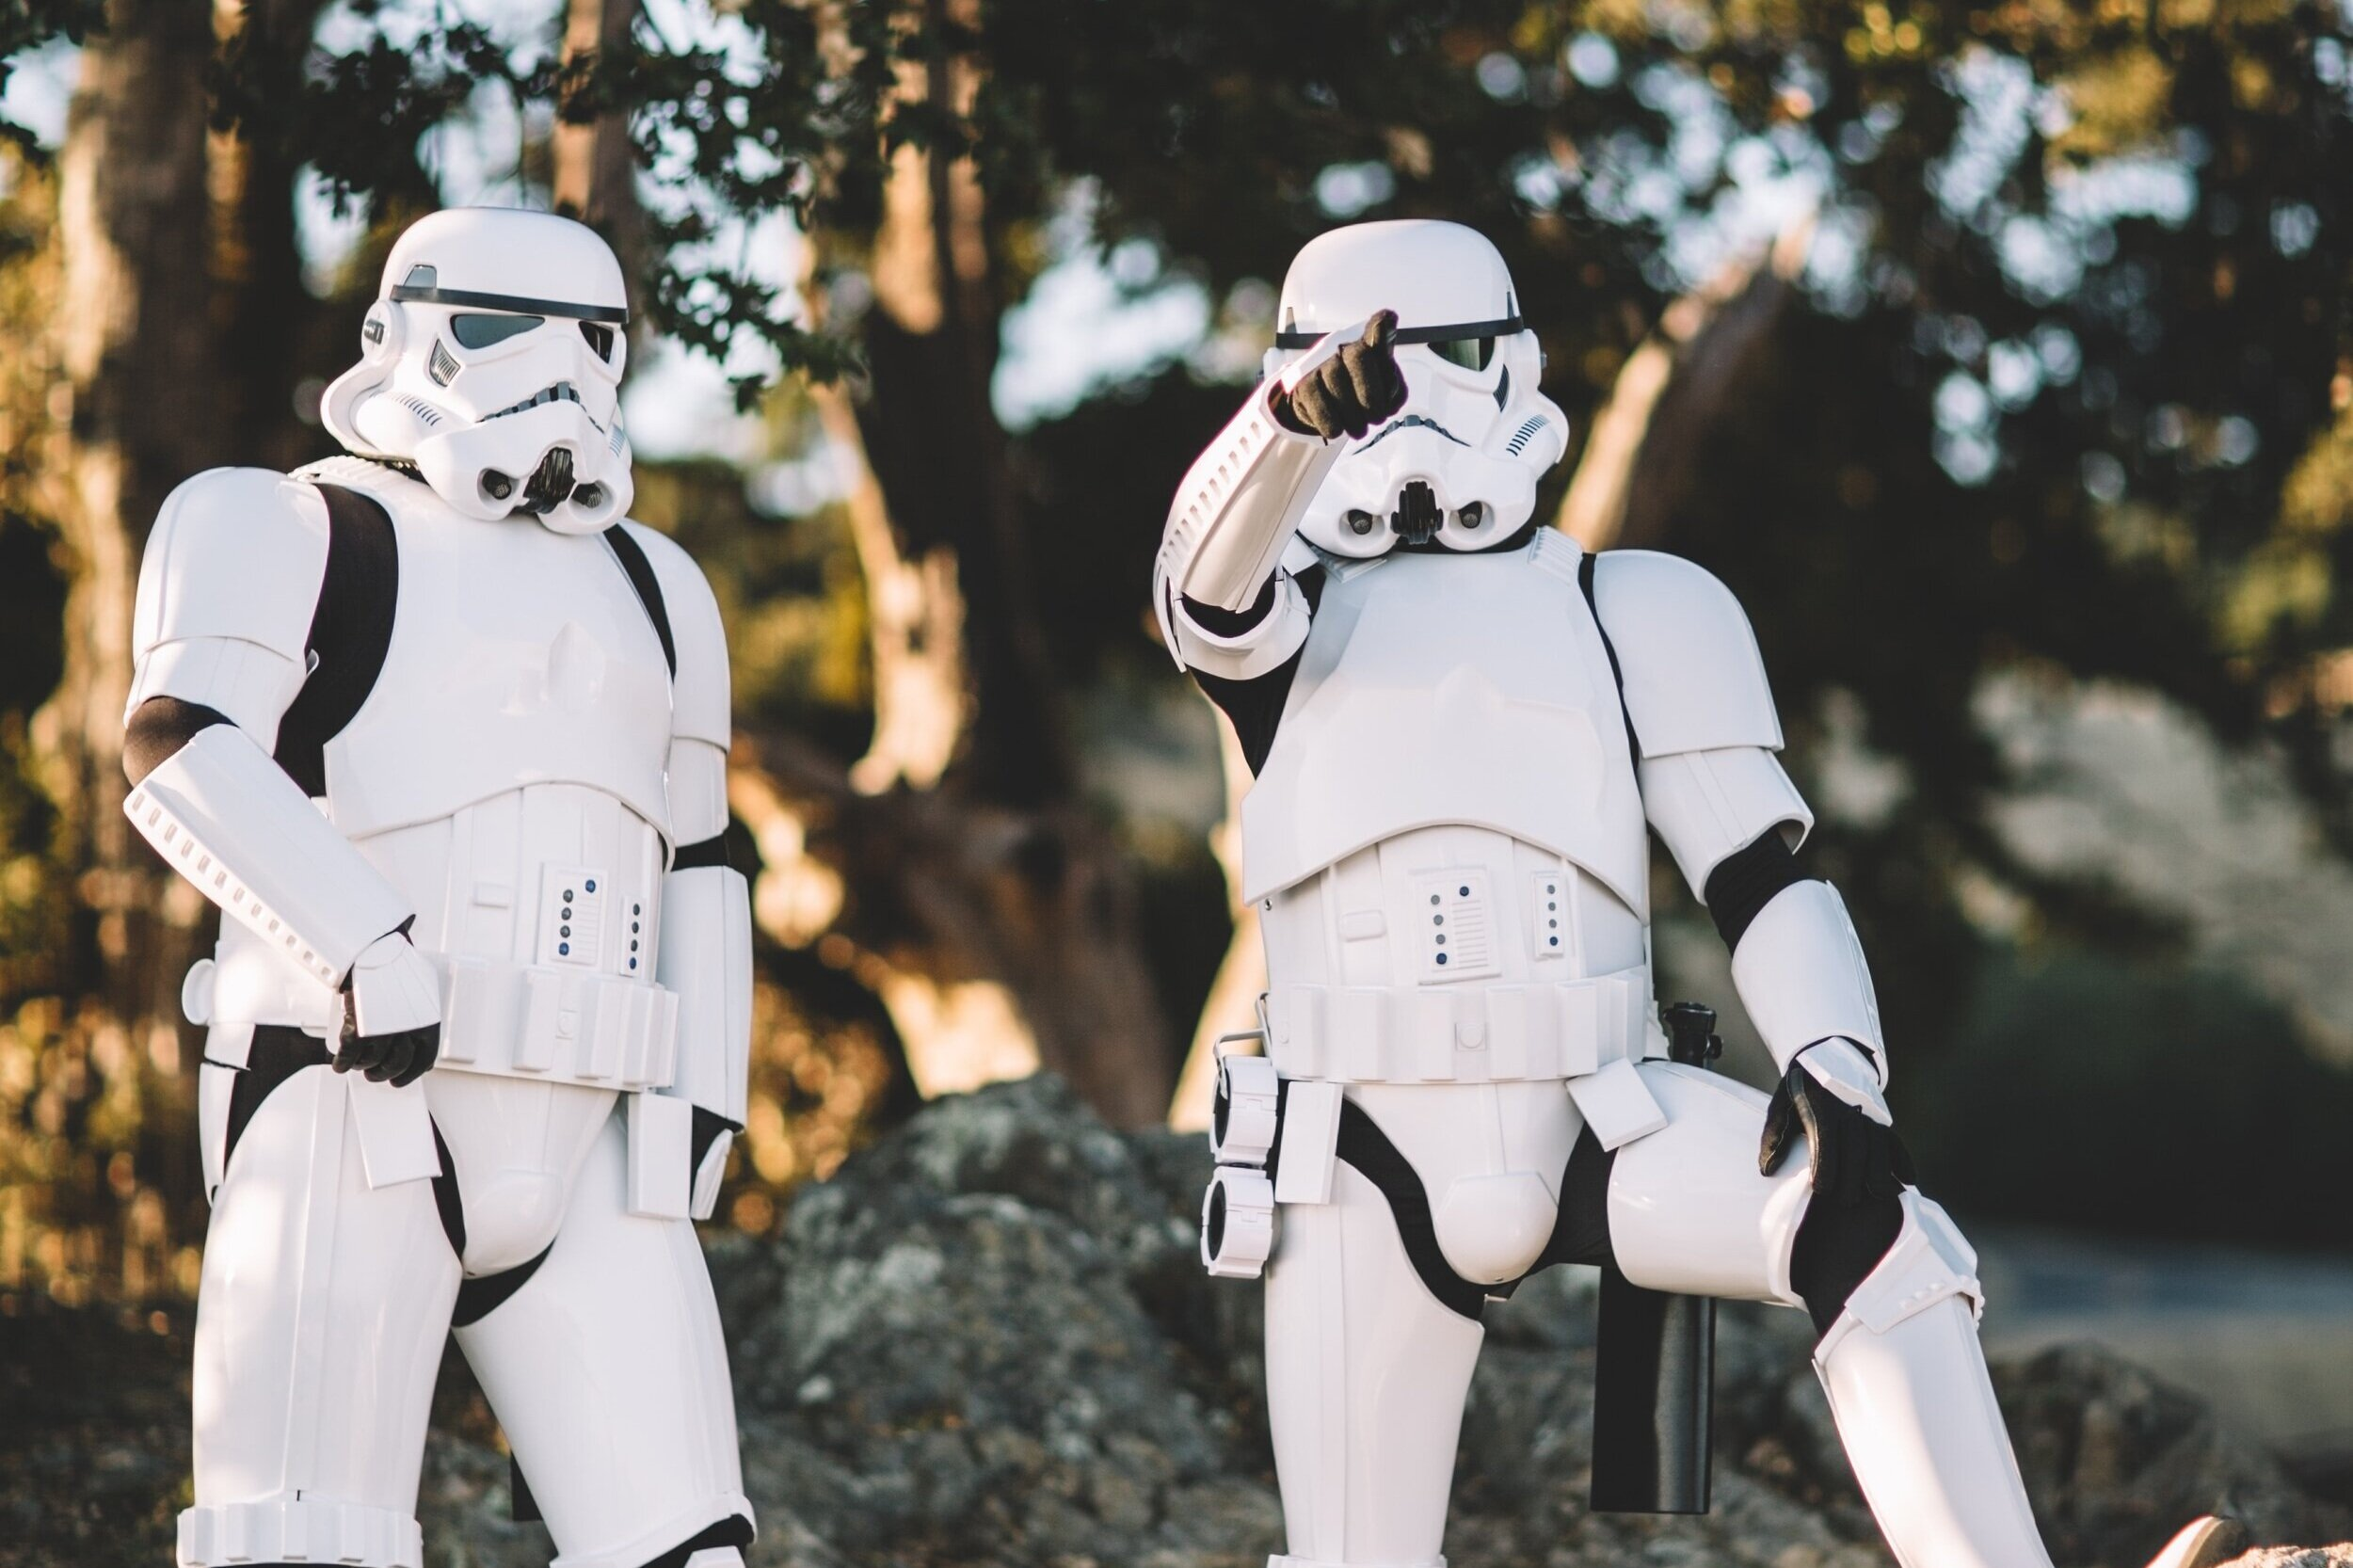 MONDAY - Stormtrooper Day